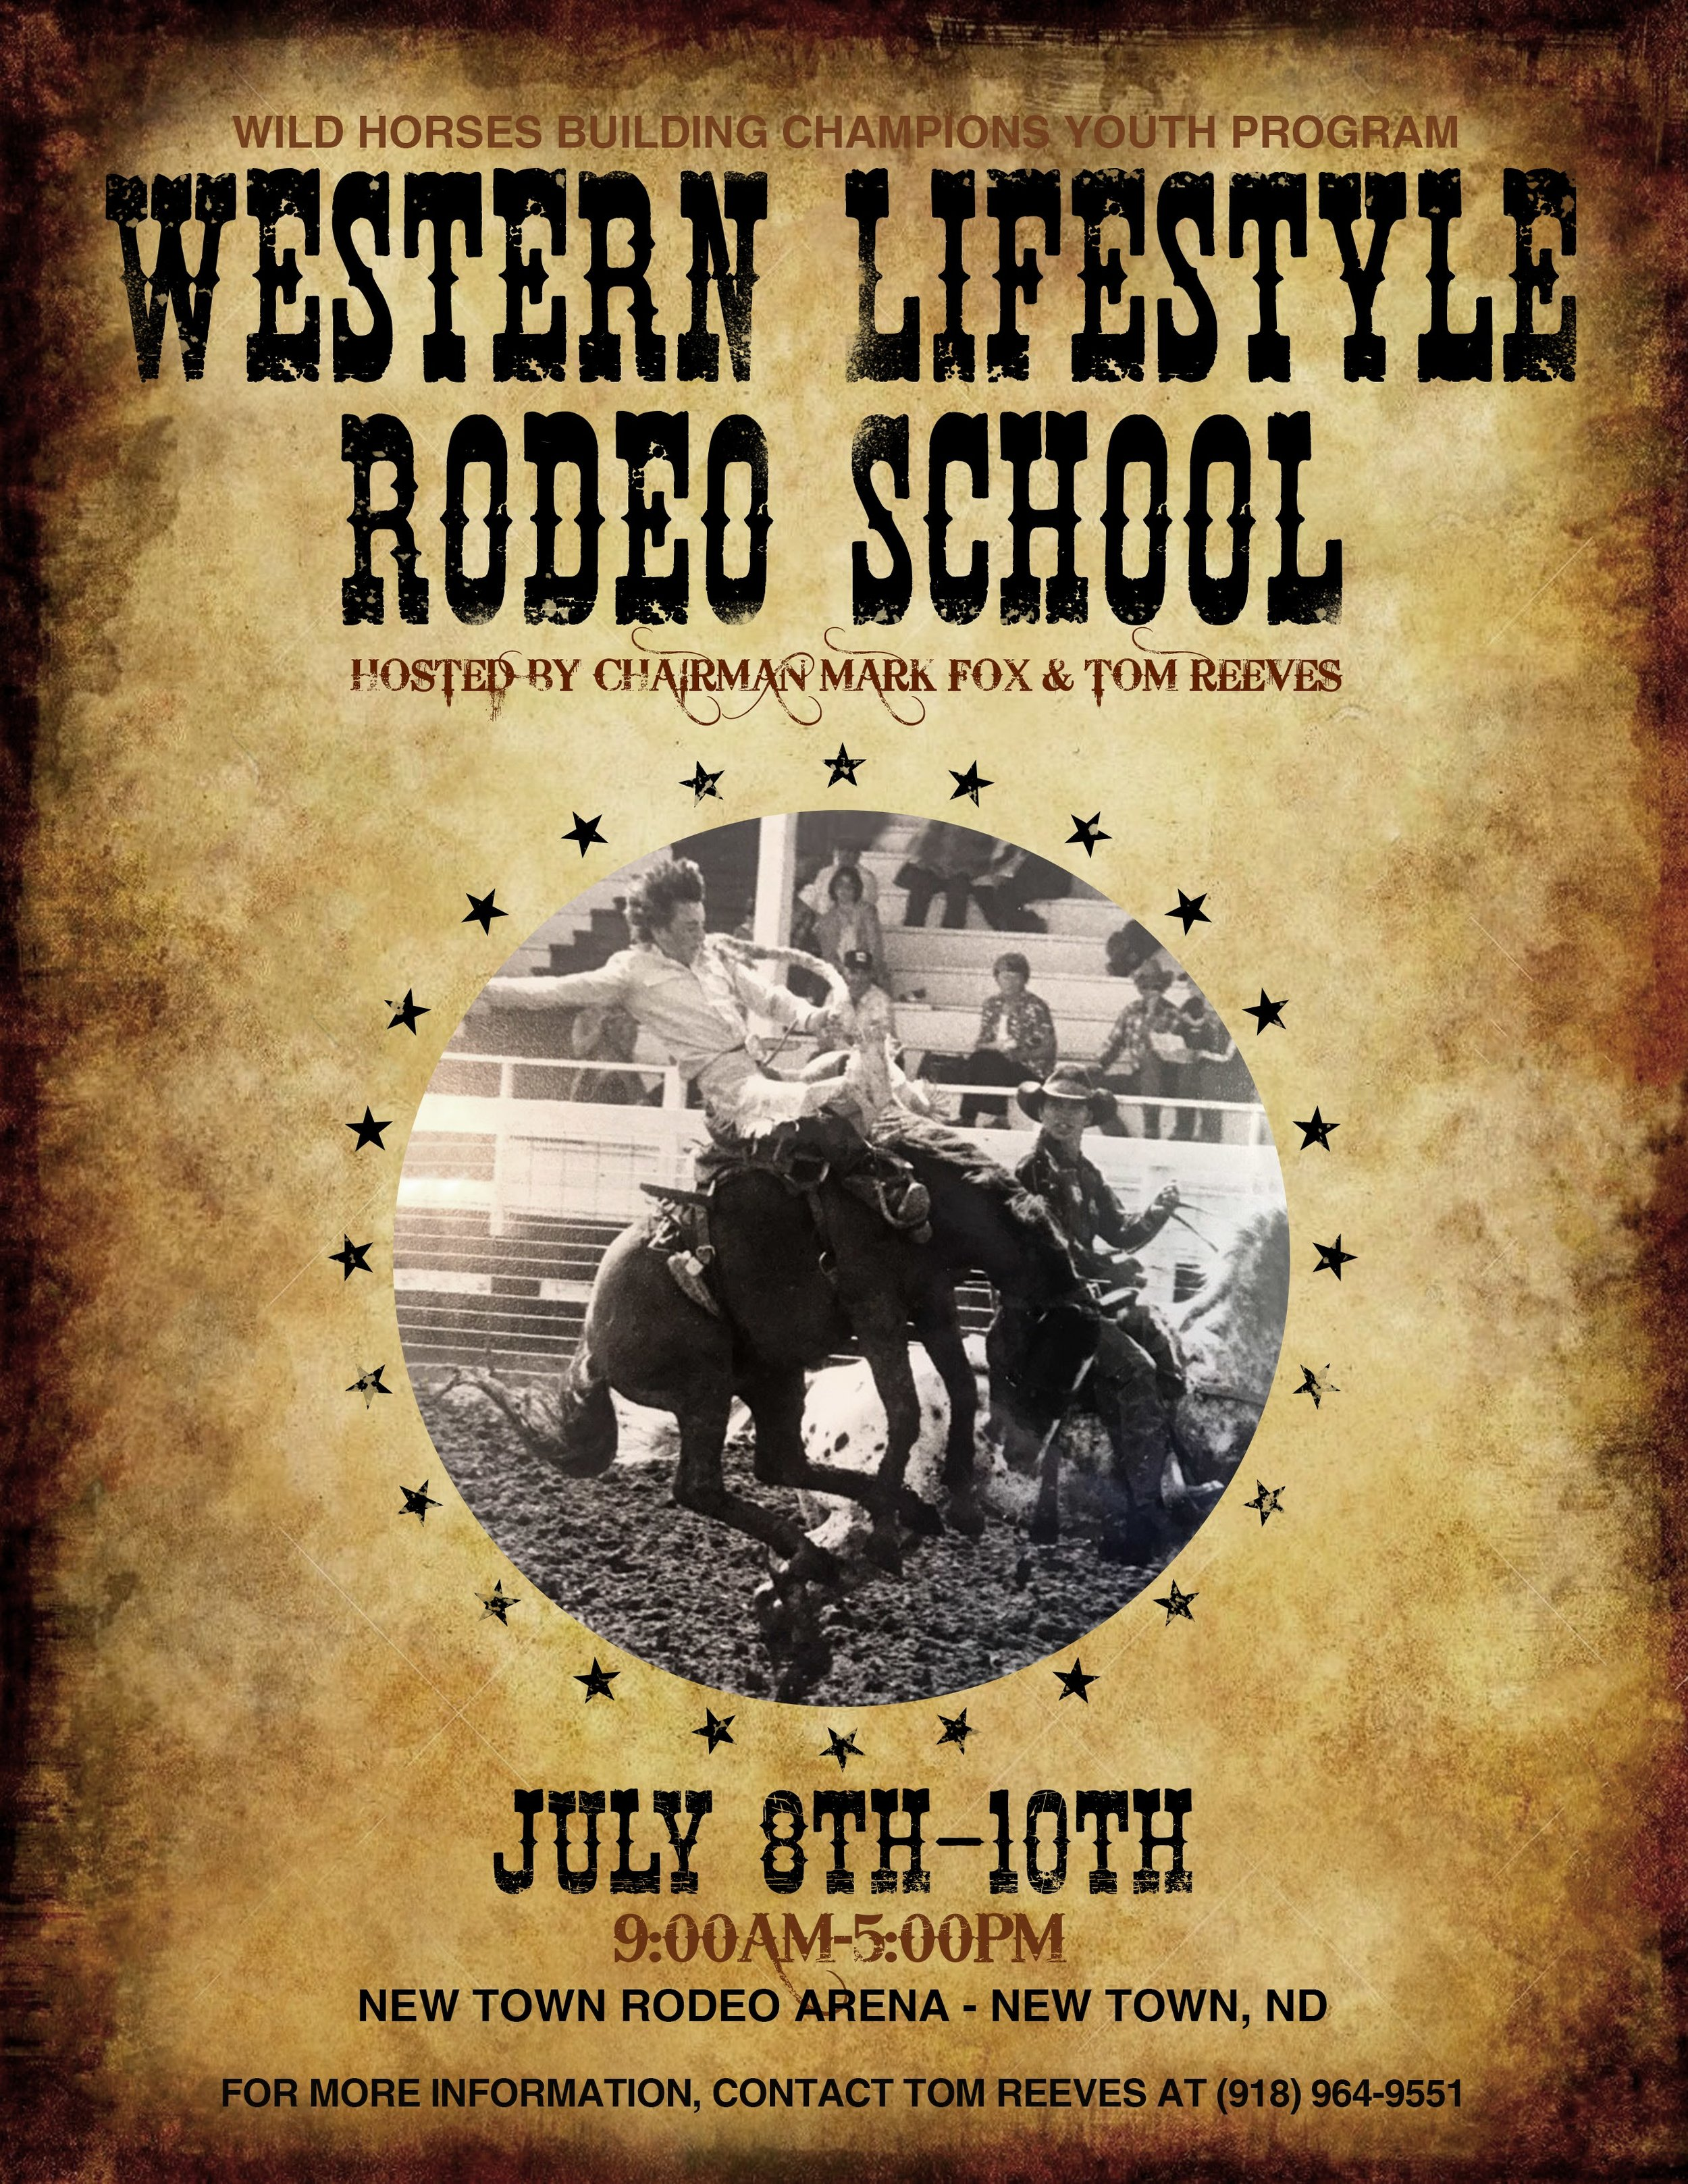 western-lifestyle-rodeo-school_july8-10_NTFB.jpg